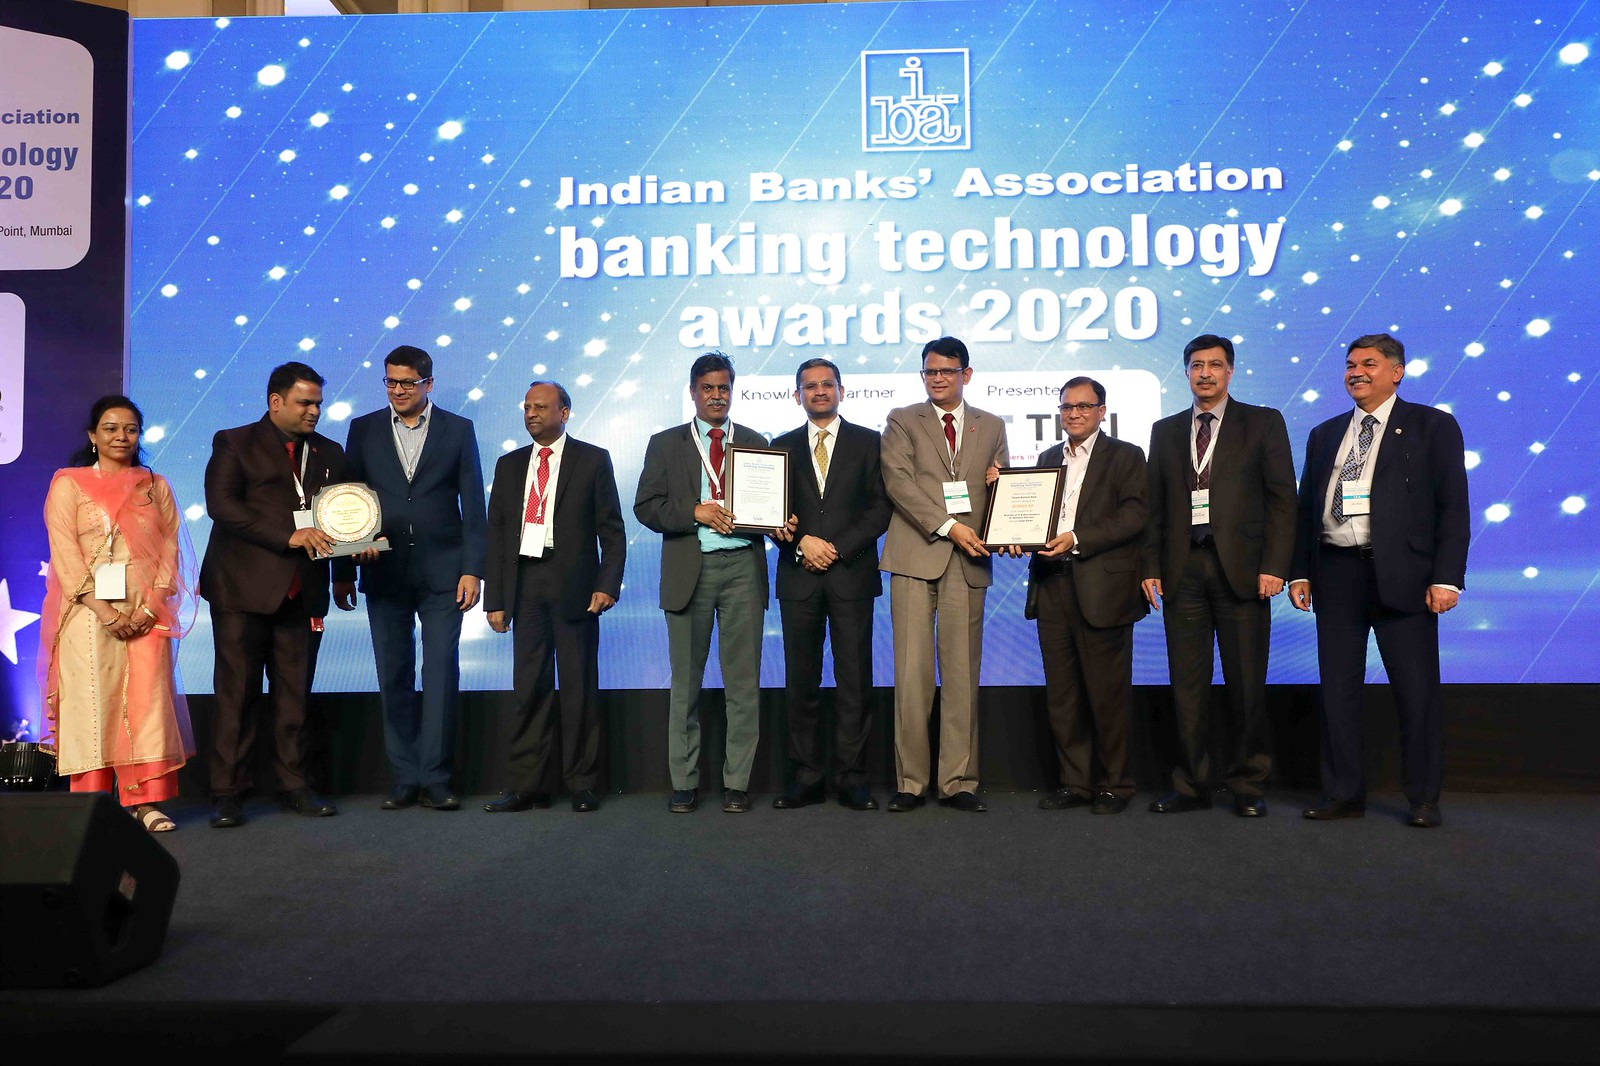 PNB won IBA Banking Technology Awards 2020